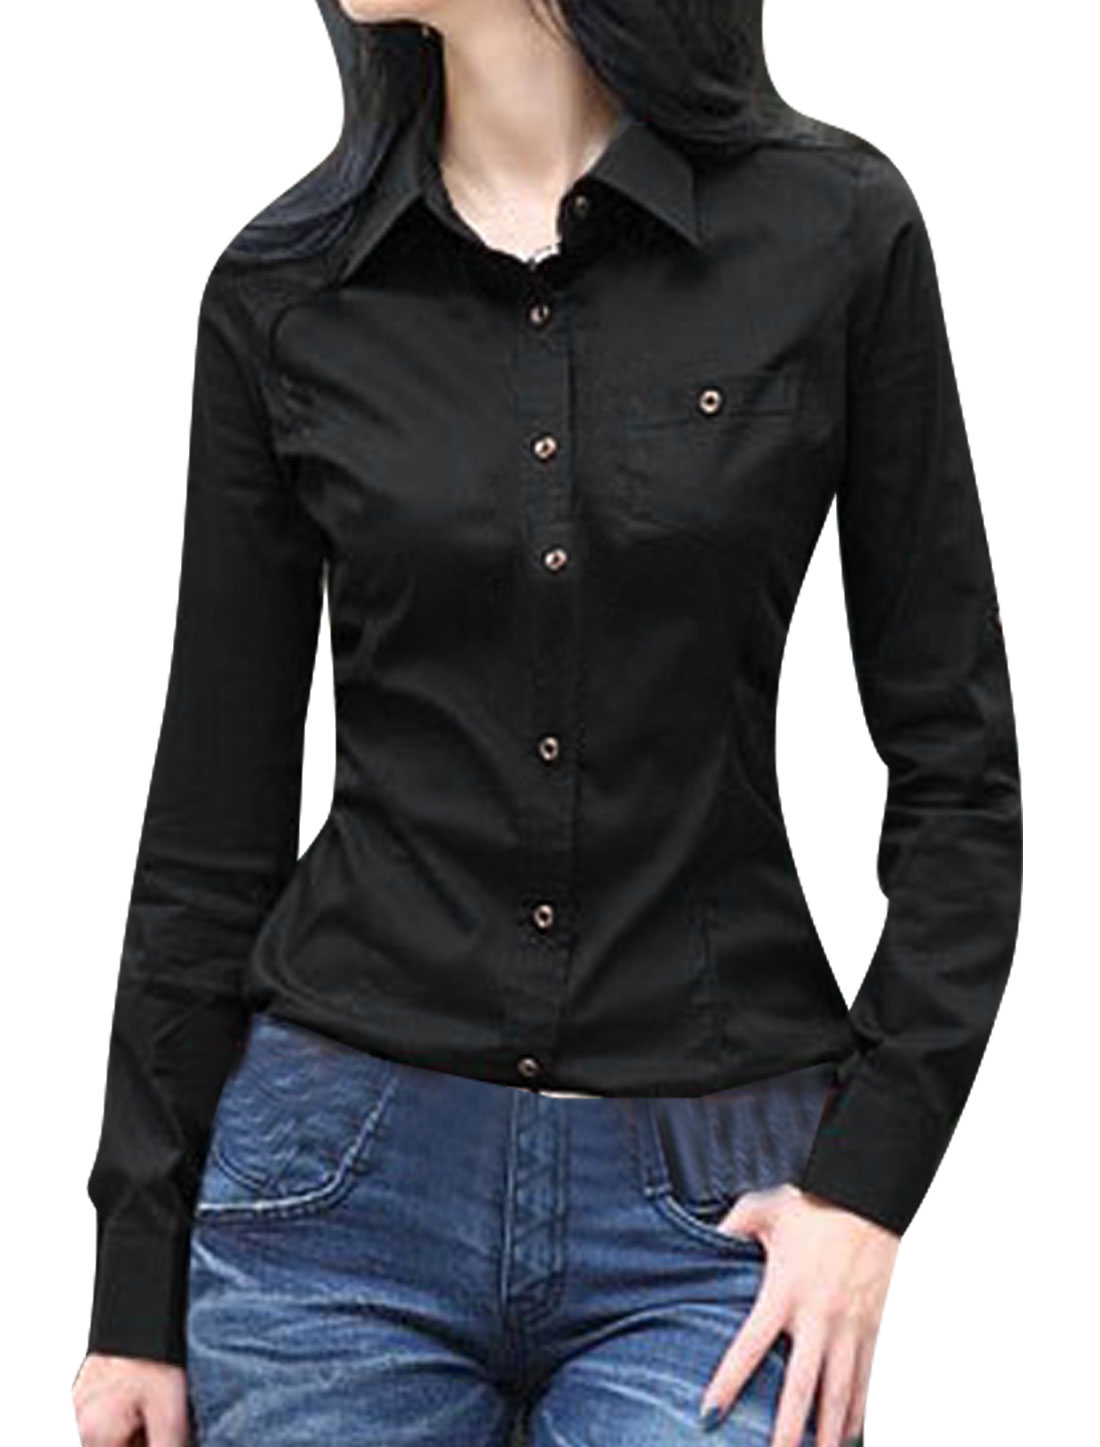 Lady Black Point Collar Roll Up Sleeve Button Down Round Hem Shirt XS